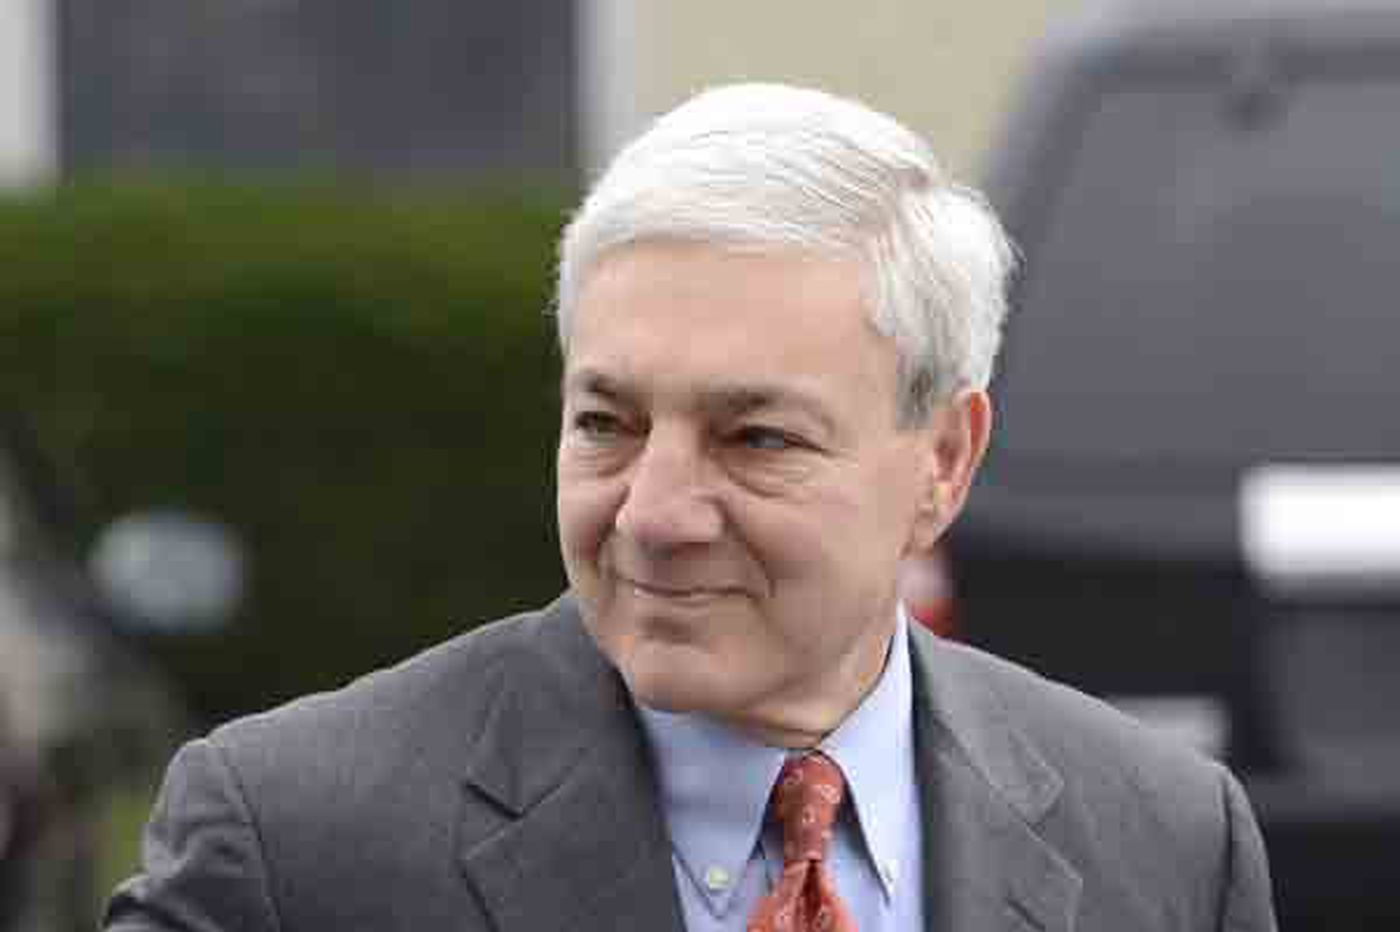 Ex-Penn State officials ordered to trial in Sandusky case